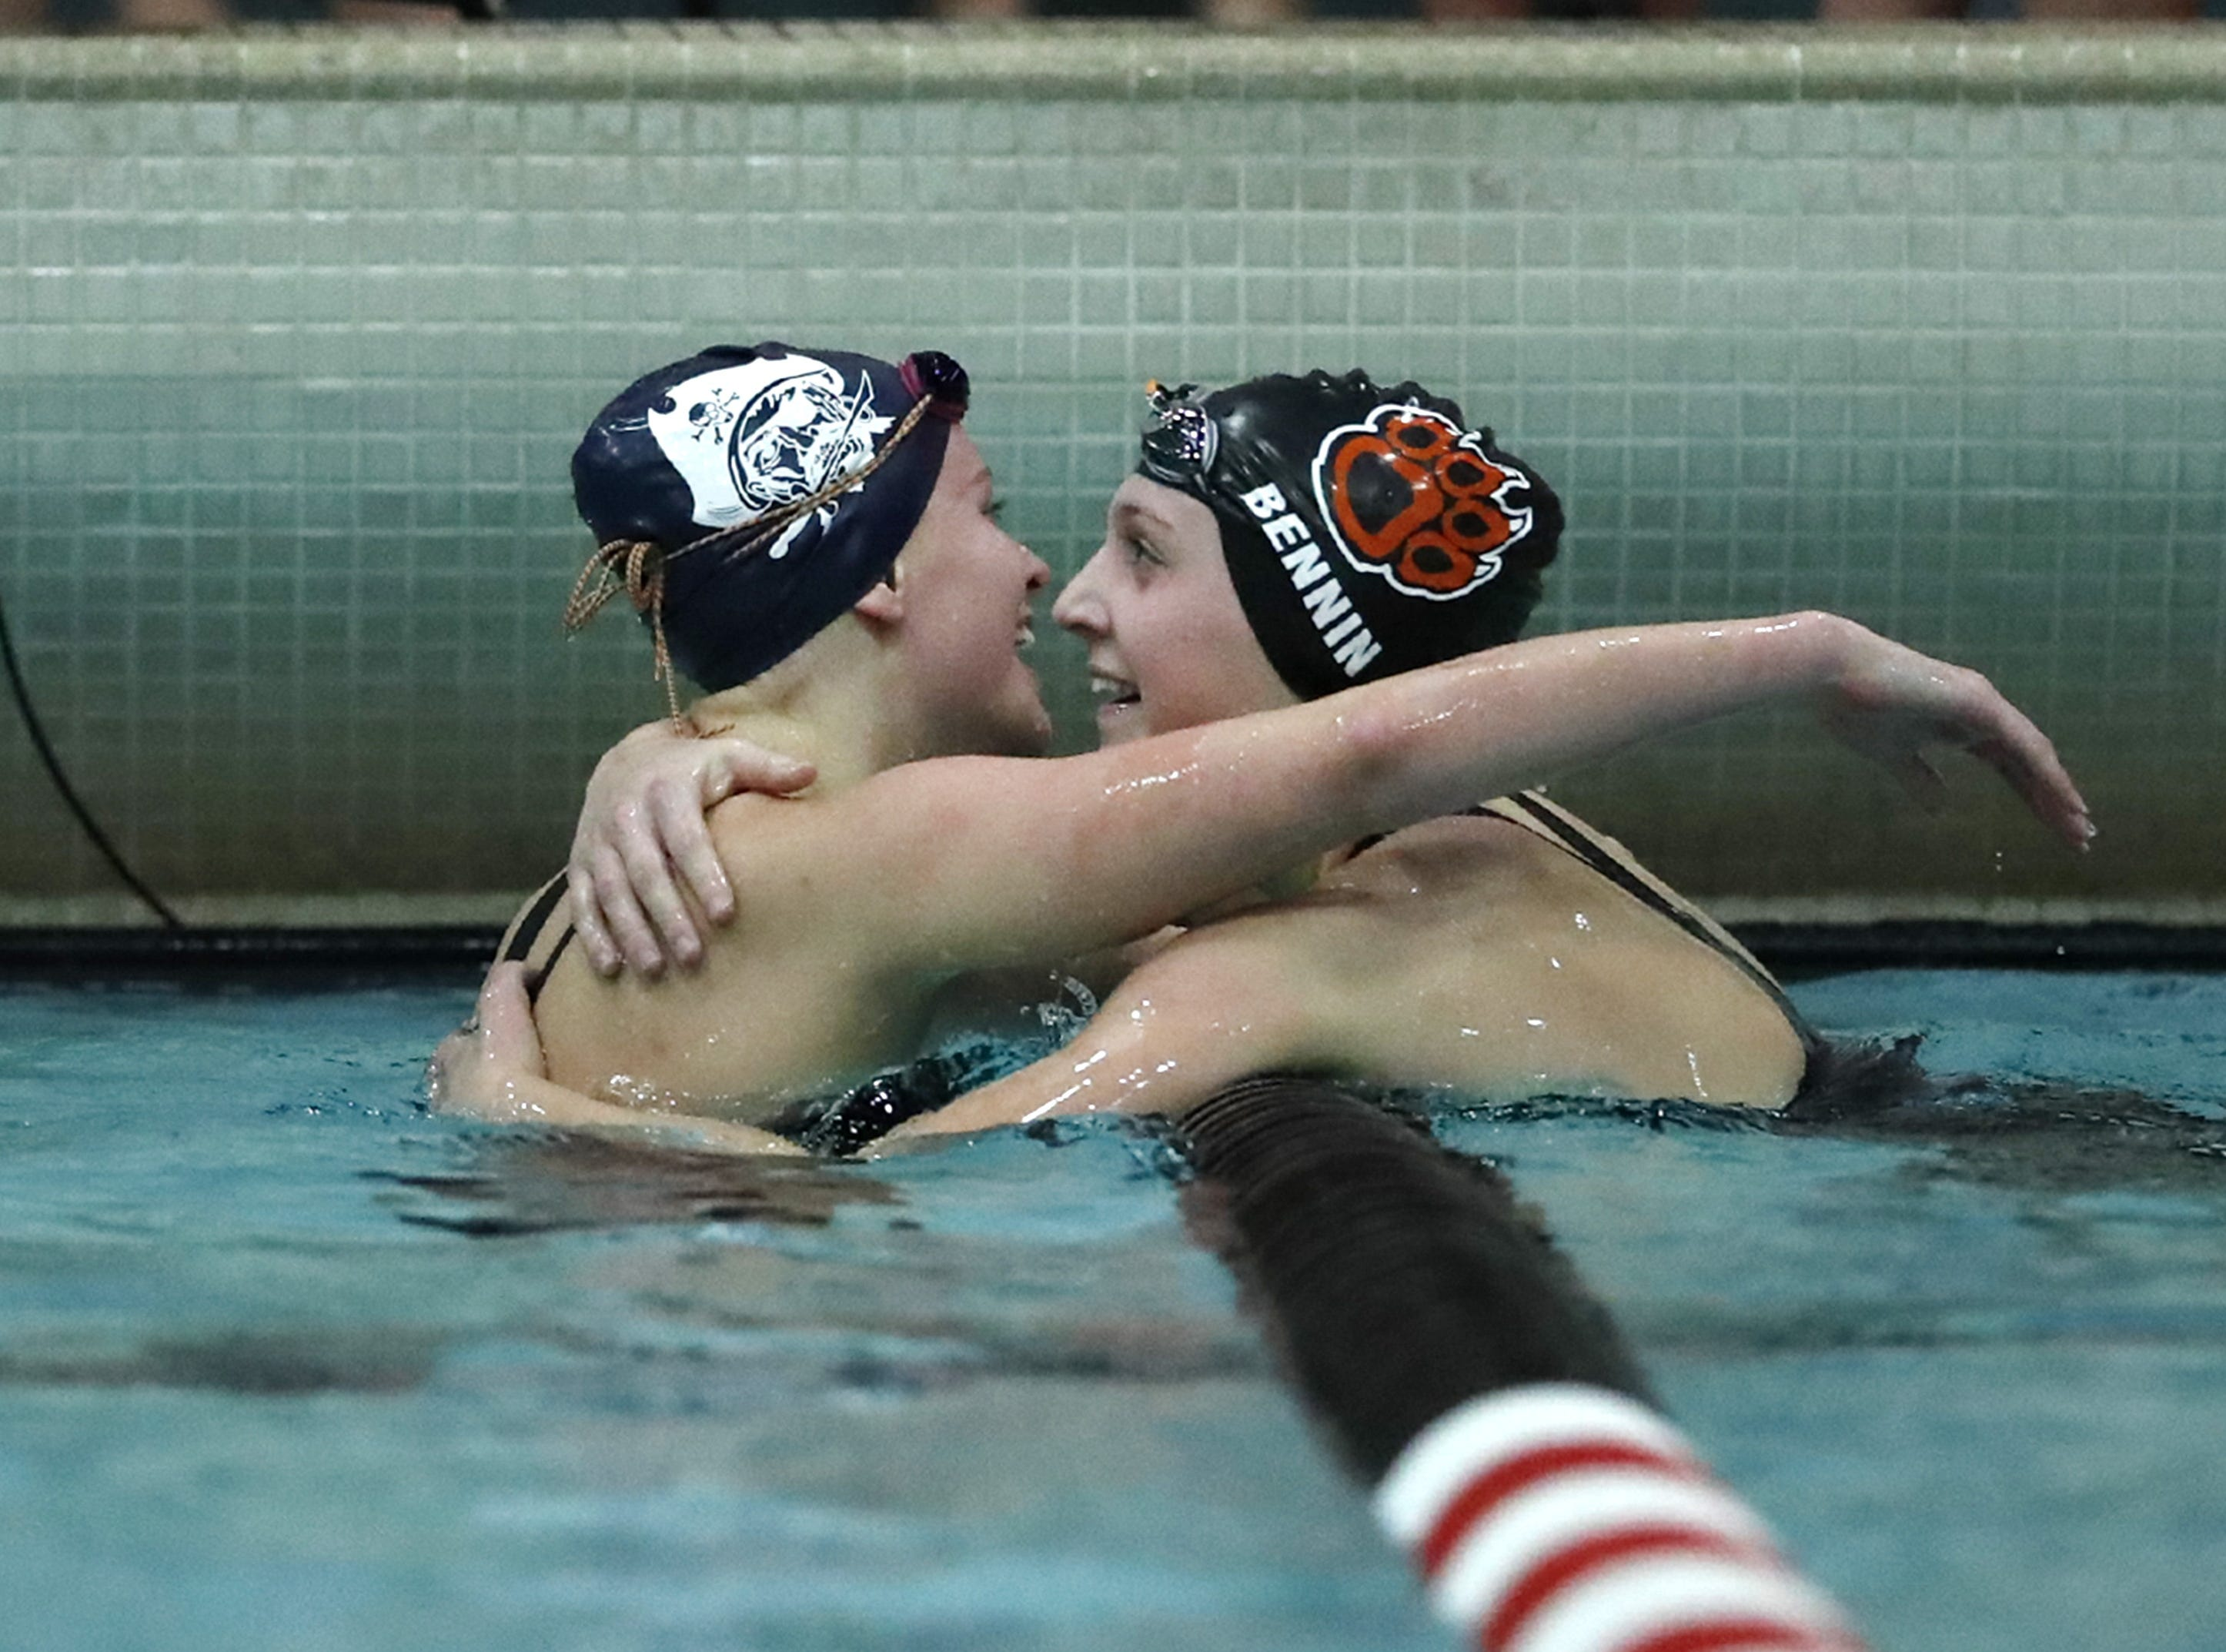 Bay PortÕs  Emma Lasecki hugs Verona Area's Grace Bennin after racing the 200 yard individual medley during the WIAA Division 1 State Swimming and Diving meet Saturday, Nov. 10, 2018, at the UW Natatorium in Madison, Wis. Danny Damiani/USA TODAY NETWORK-Wisconsin